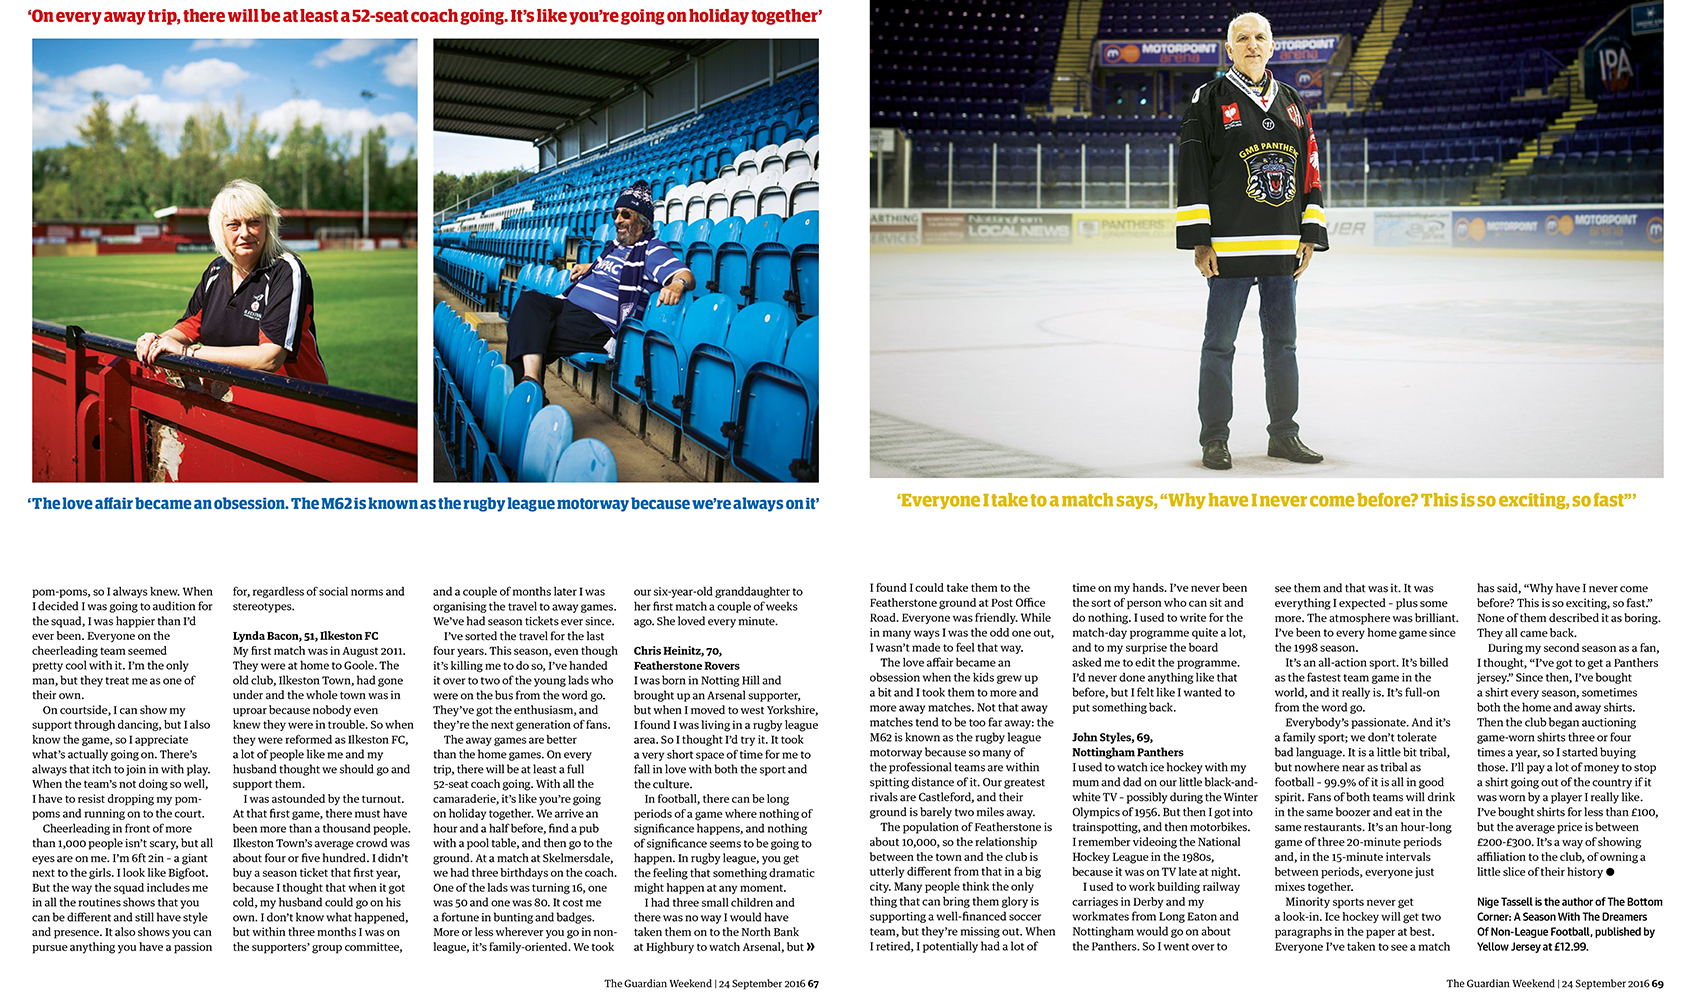 Pages from the 'Hopelessly devoted' feature in the Guardian Weekend Magazine.